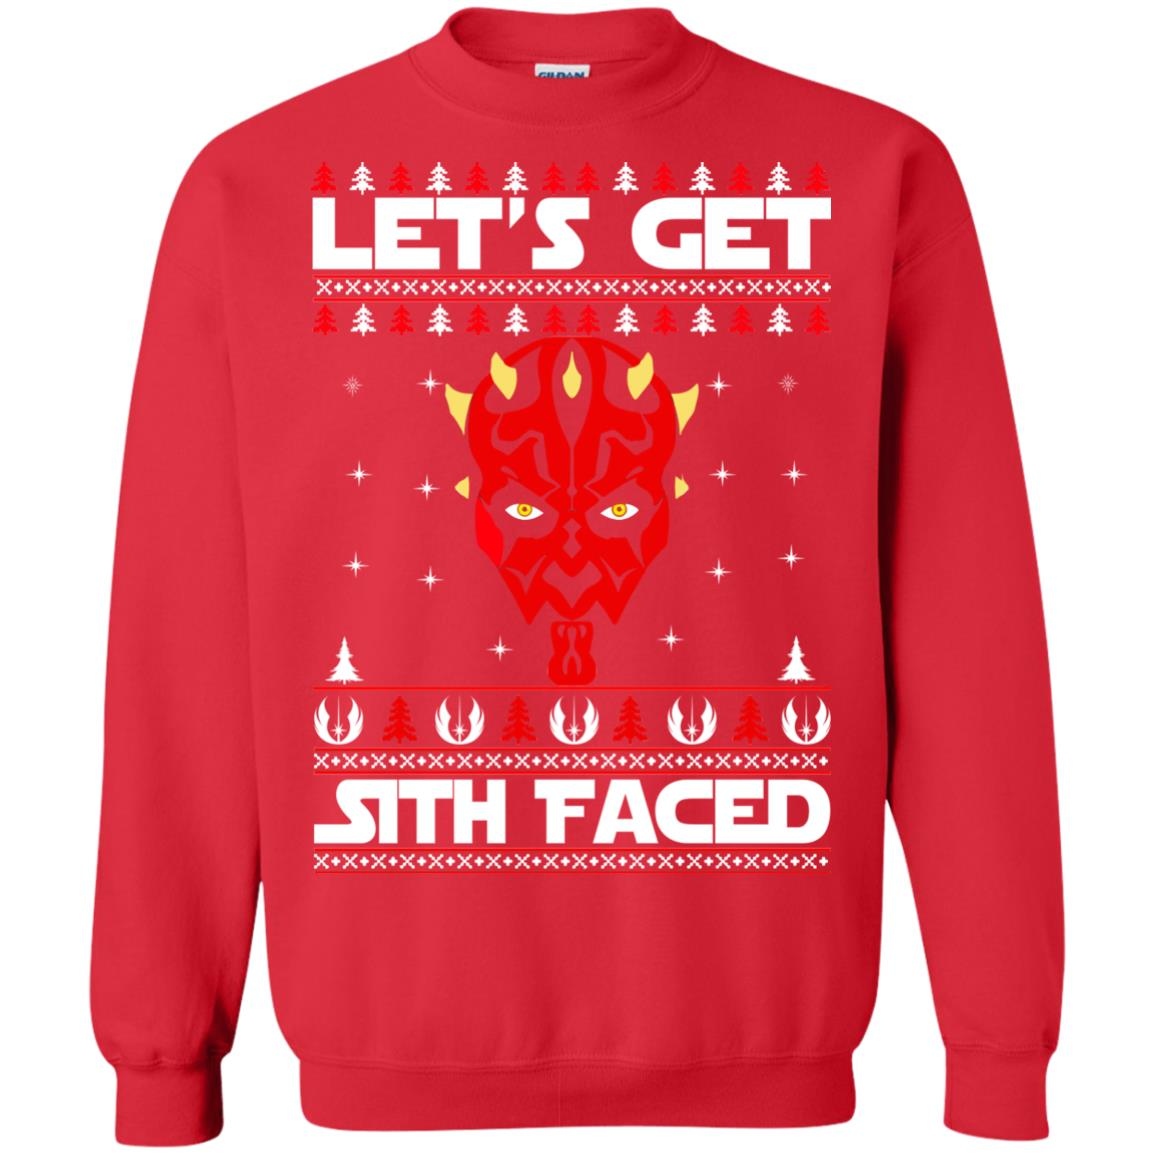 image 1754 - Darth Maul Let's Get Sith Faced Christmas Sweater